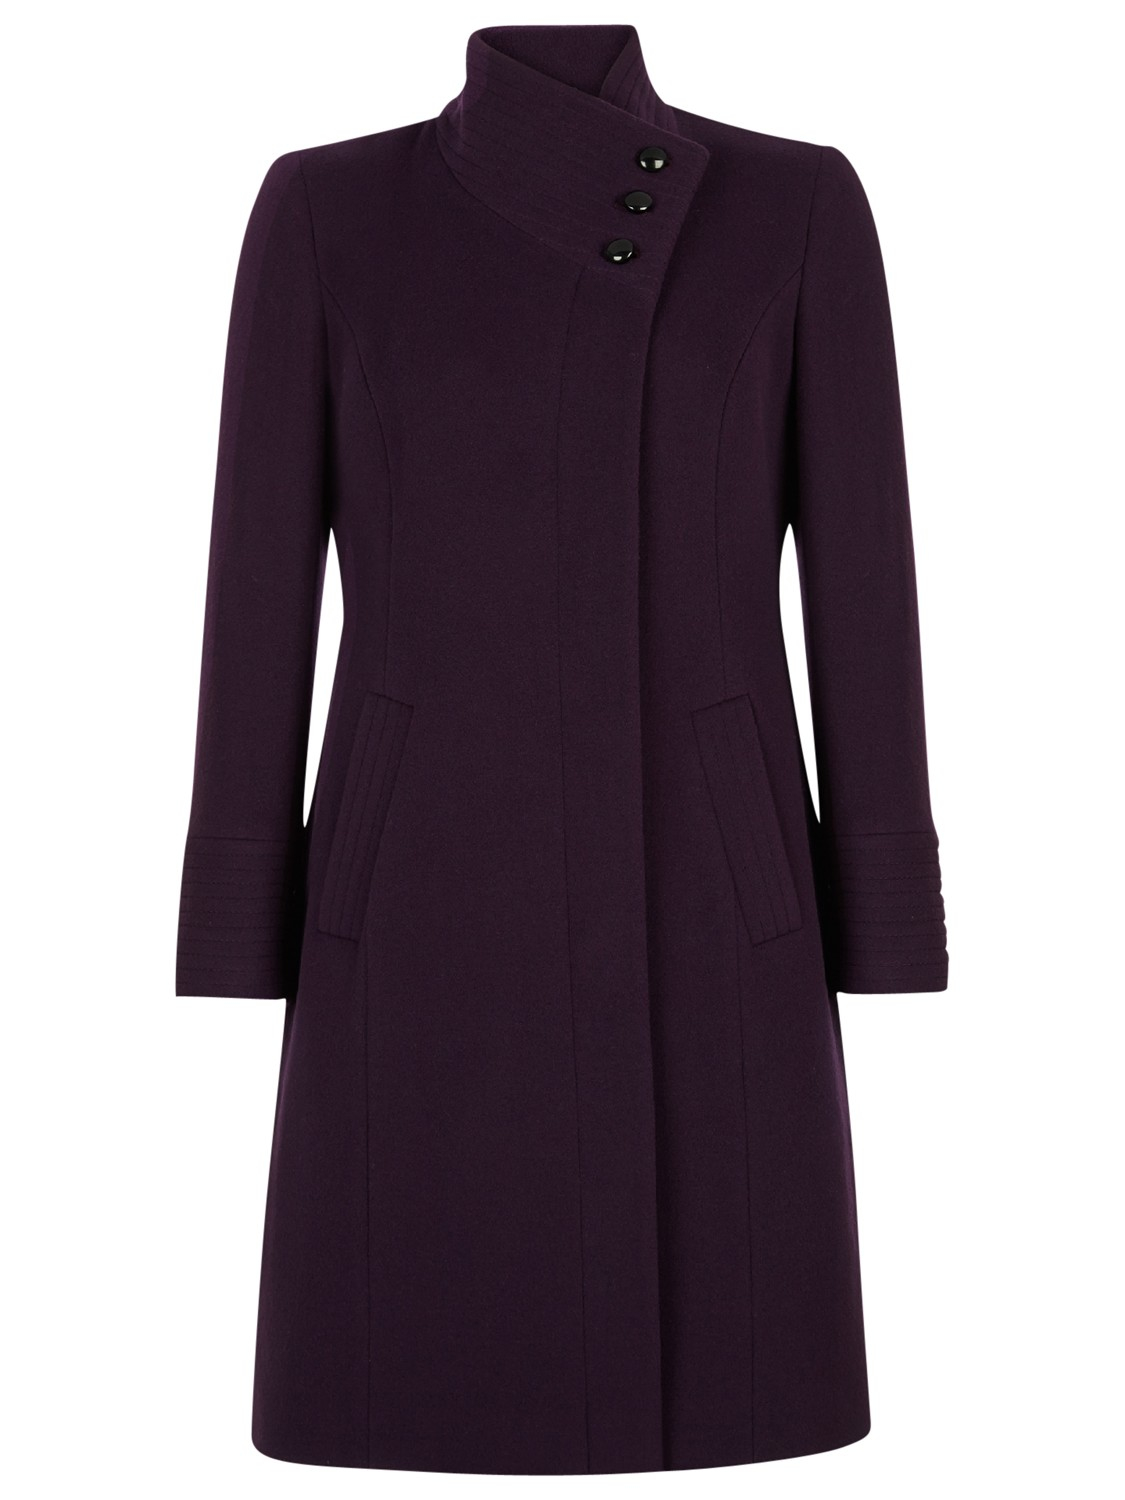 Find Petite from the Sale department at Debenhams. Shop a wide range of Coats & jackets products and more at our online shop today. Menu Blue petite wool pea coat Save. Was £ Now £ Lands' End White petite casual down coat Save. Was £ Now £ Lands' End.